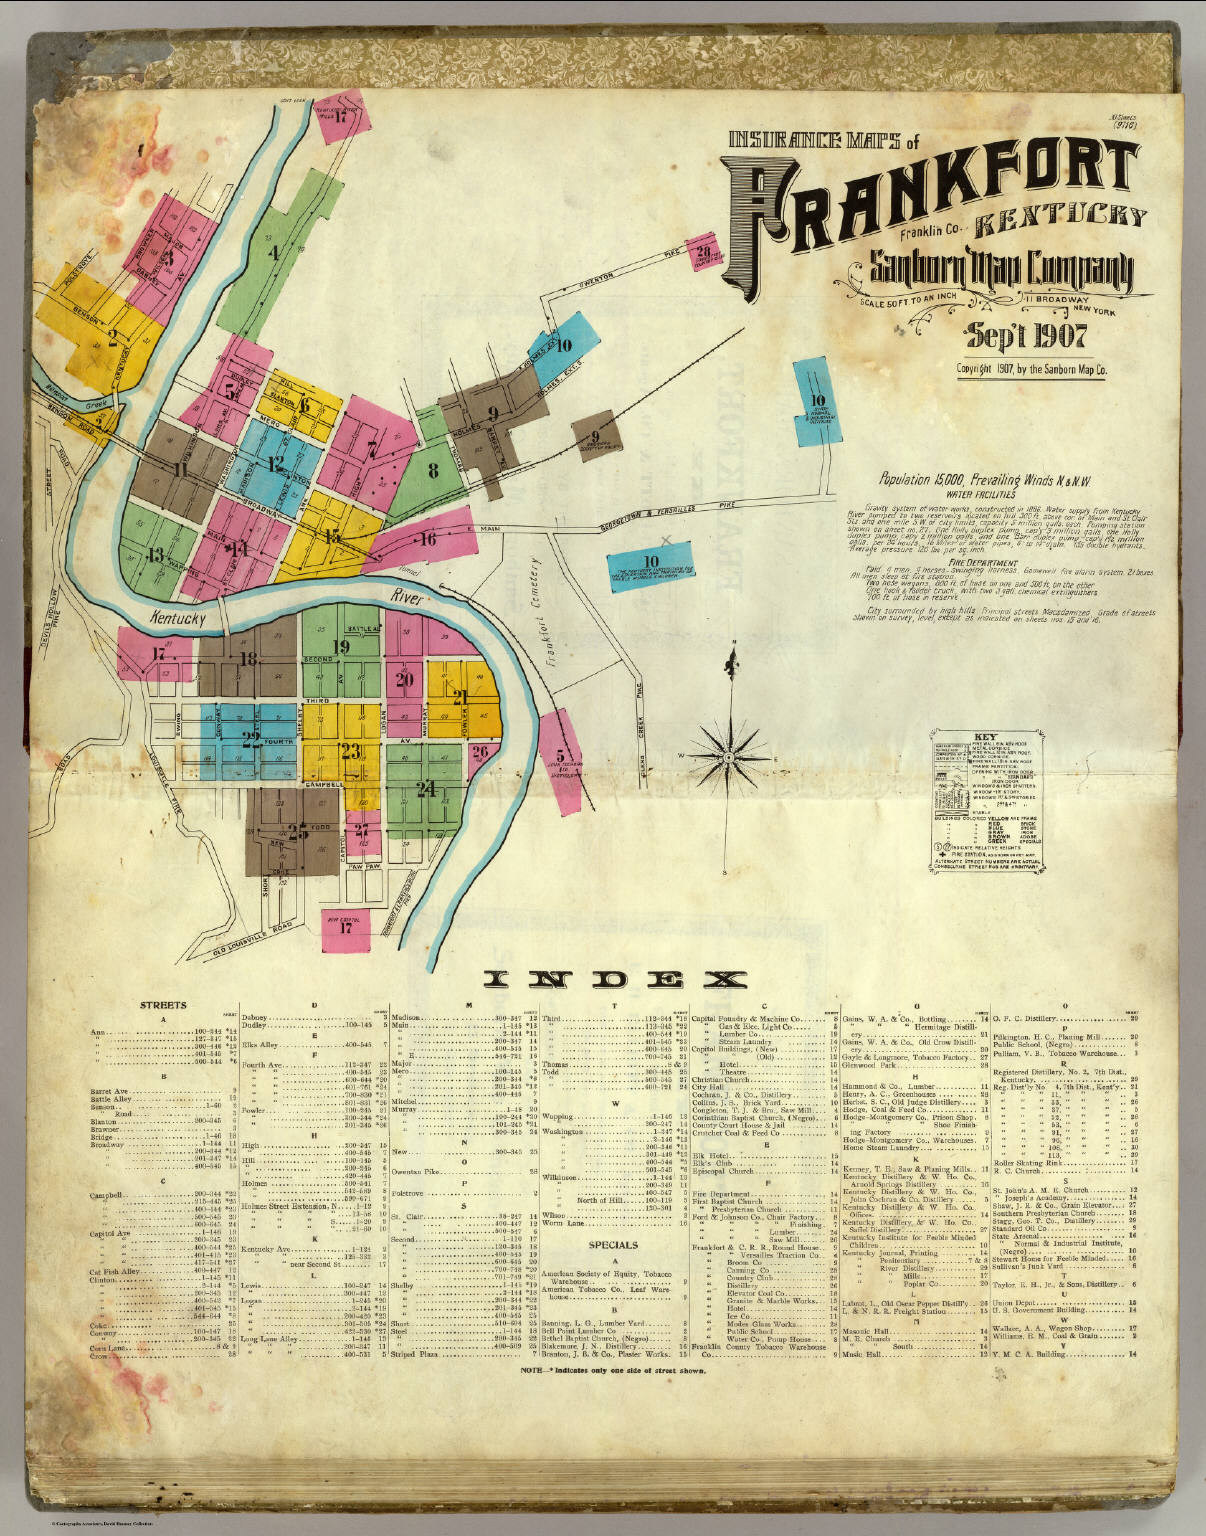 Insurance Maps Of Frankfort Kentucky Sheet Index David - The old map company